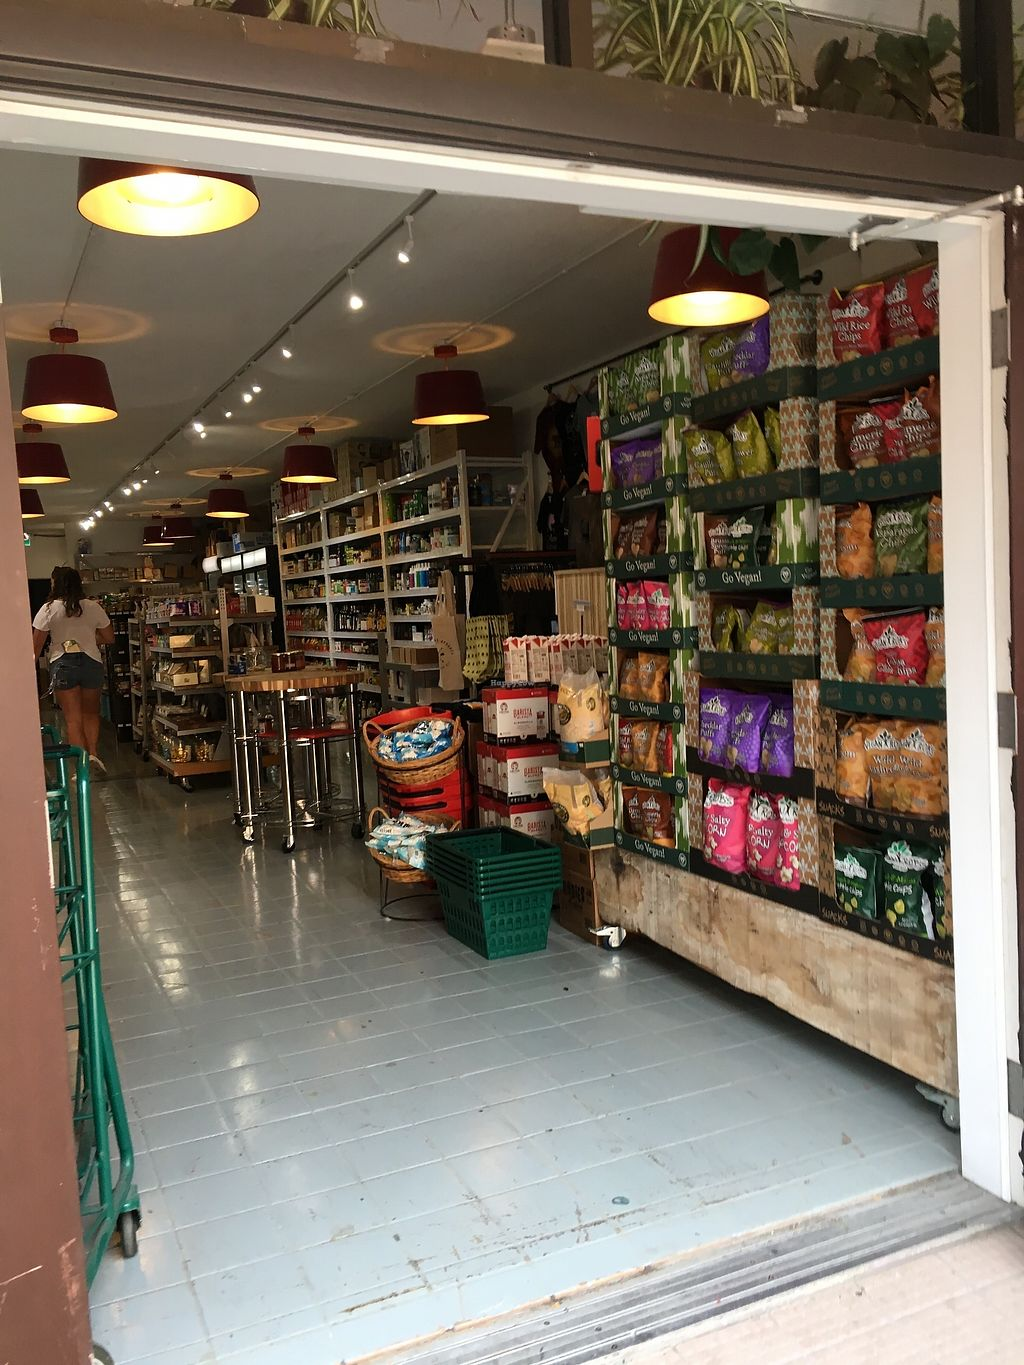 """Photo of Vegan Supply  by <a href=""""/members/profile/vegan%20frog"""">vegan frog</a> <br/>Entrance <br/> August 7, 2017  - <a href='/contact/abuse/image/59337/289958'>Report</a>"""